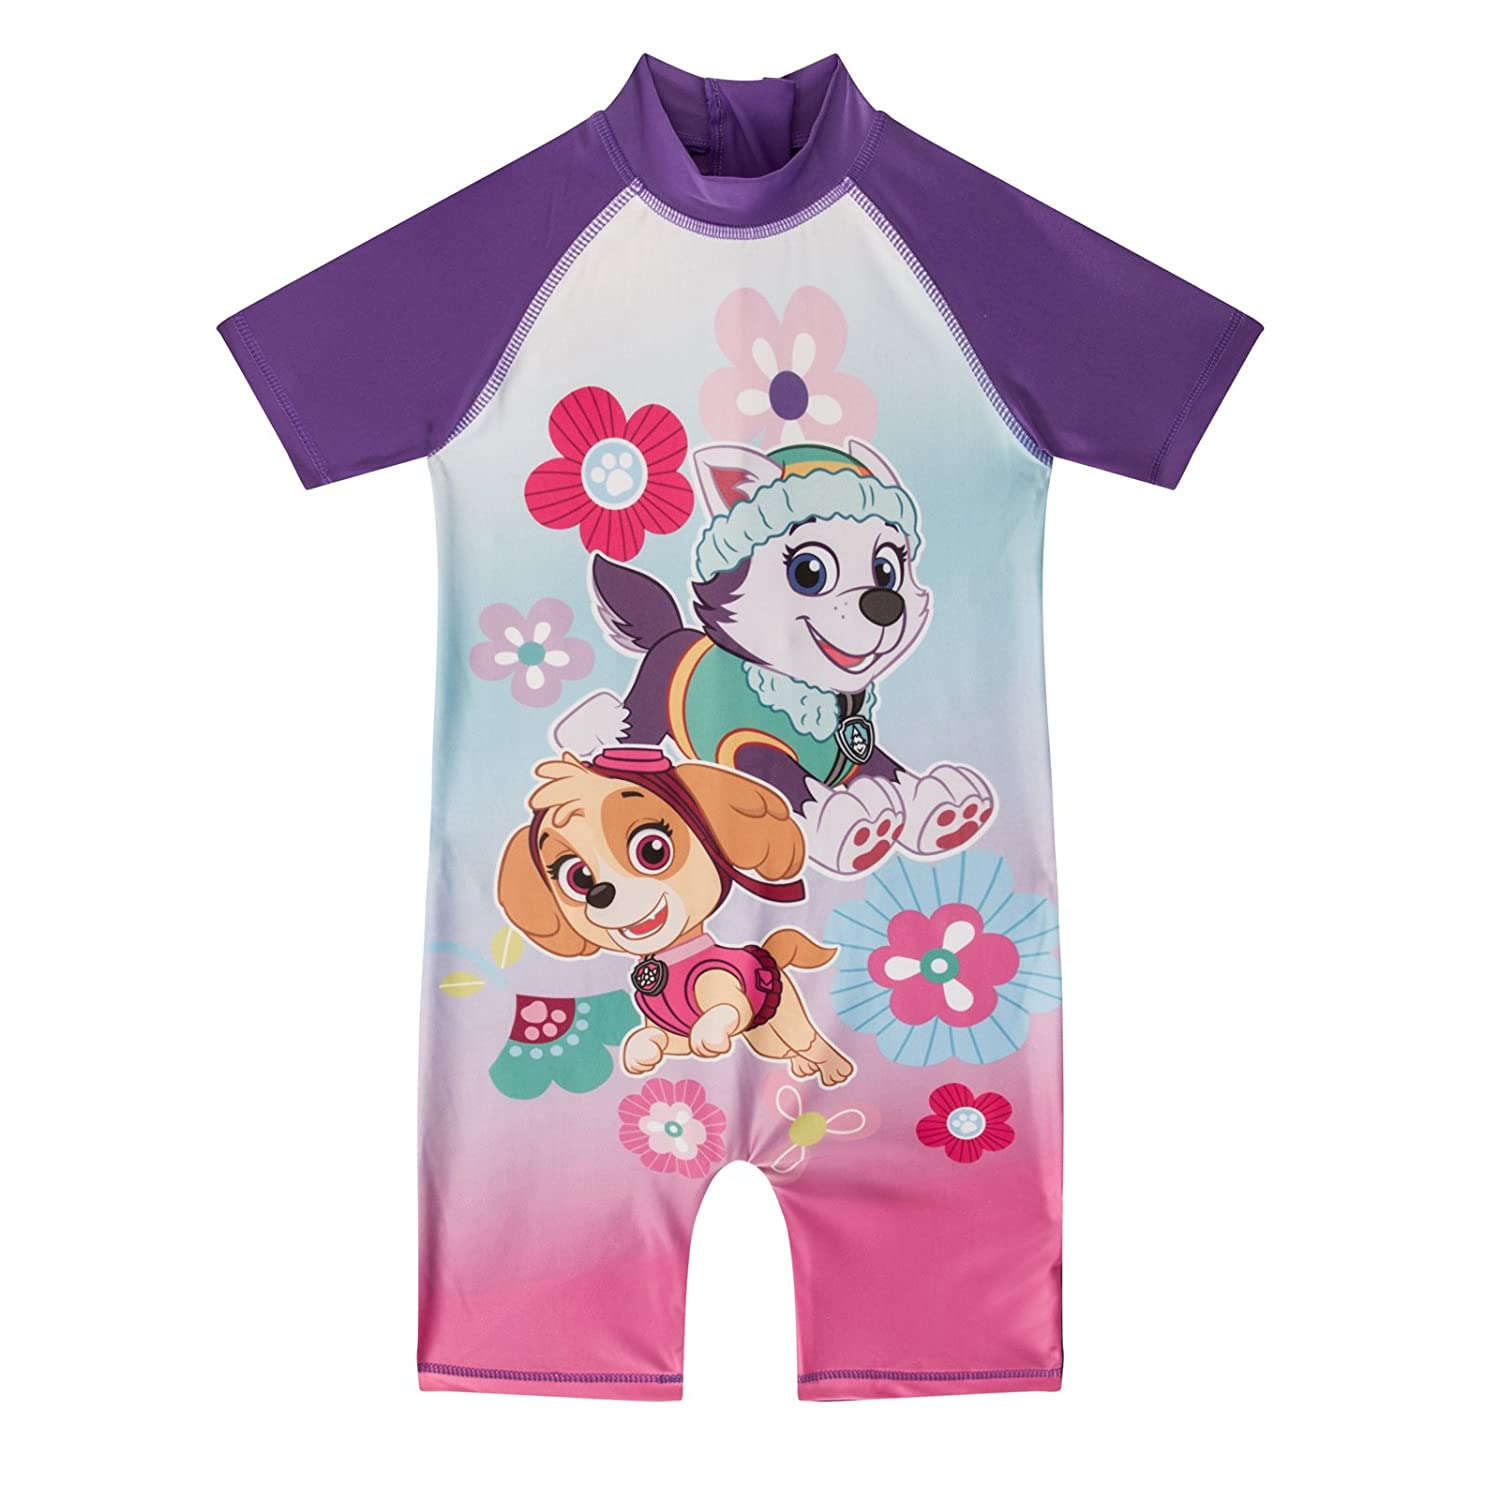 Toddler Swimsuit Style Paw Patrol Girls Size 3-4 As Available